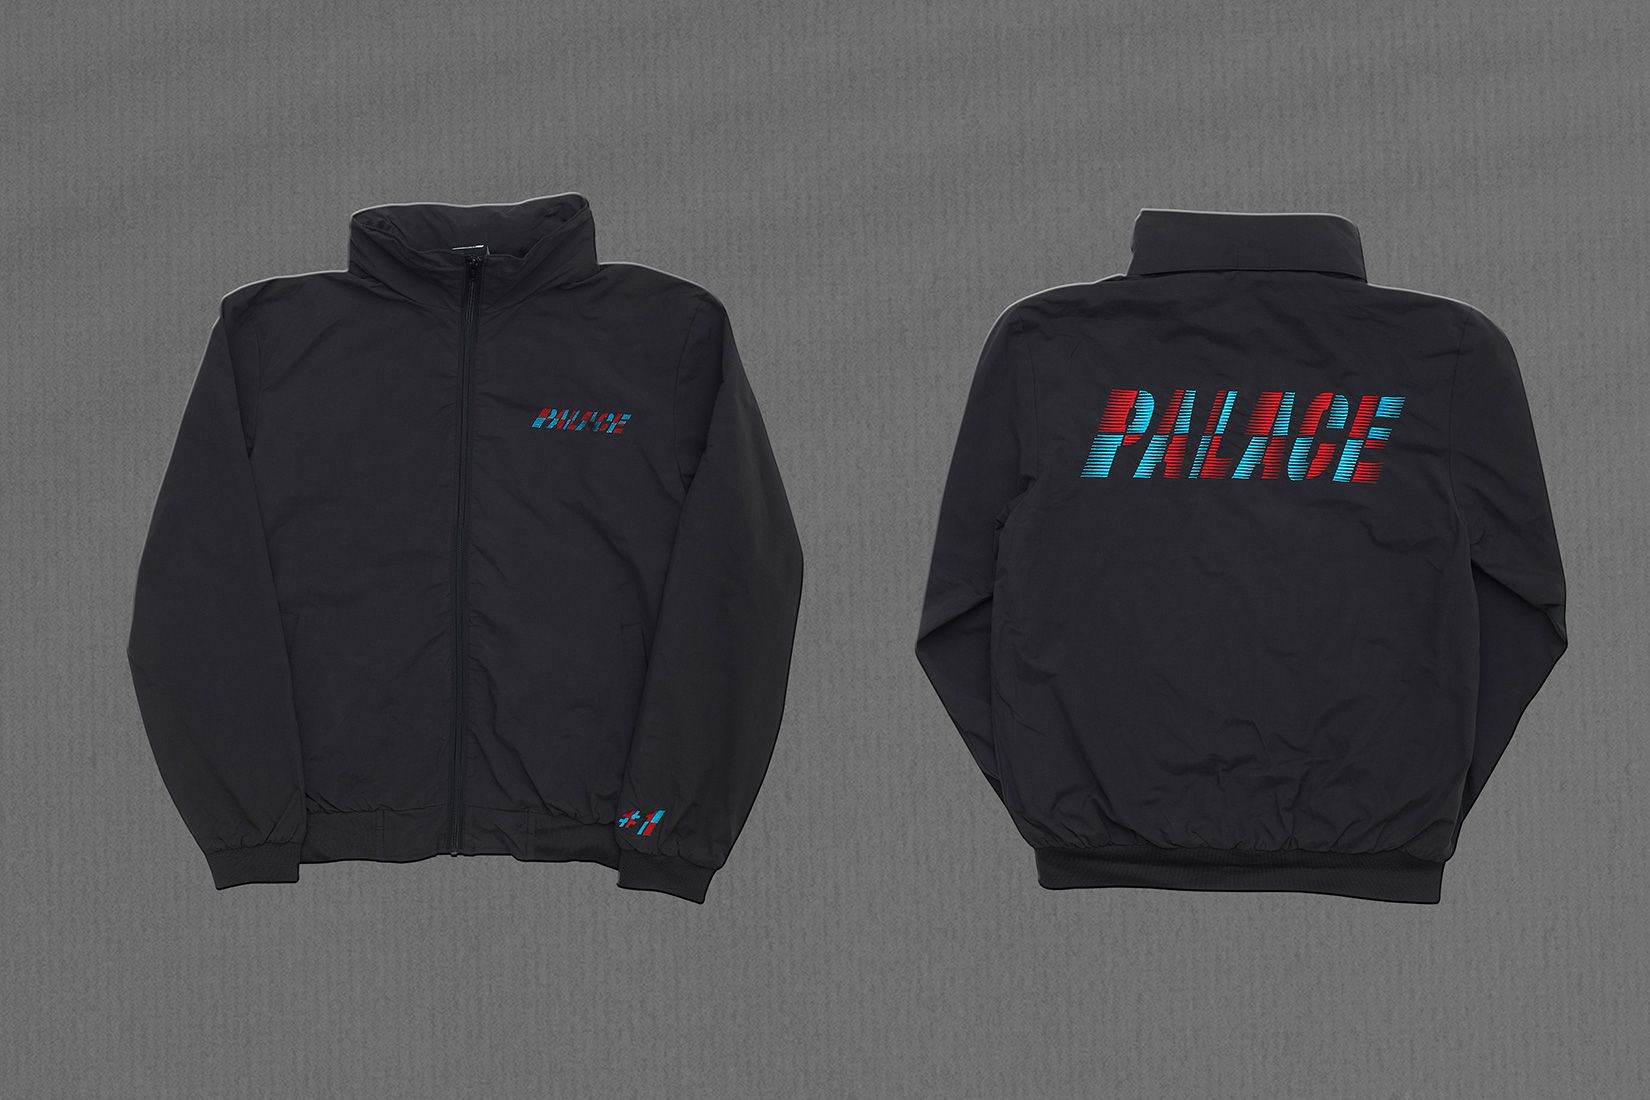 With the launch of their first flagship store looming closer, London skate label Palace drop a fresh batch of apparel for the Spring/Summer 2015 season.